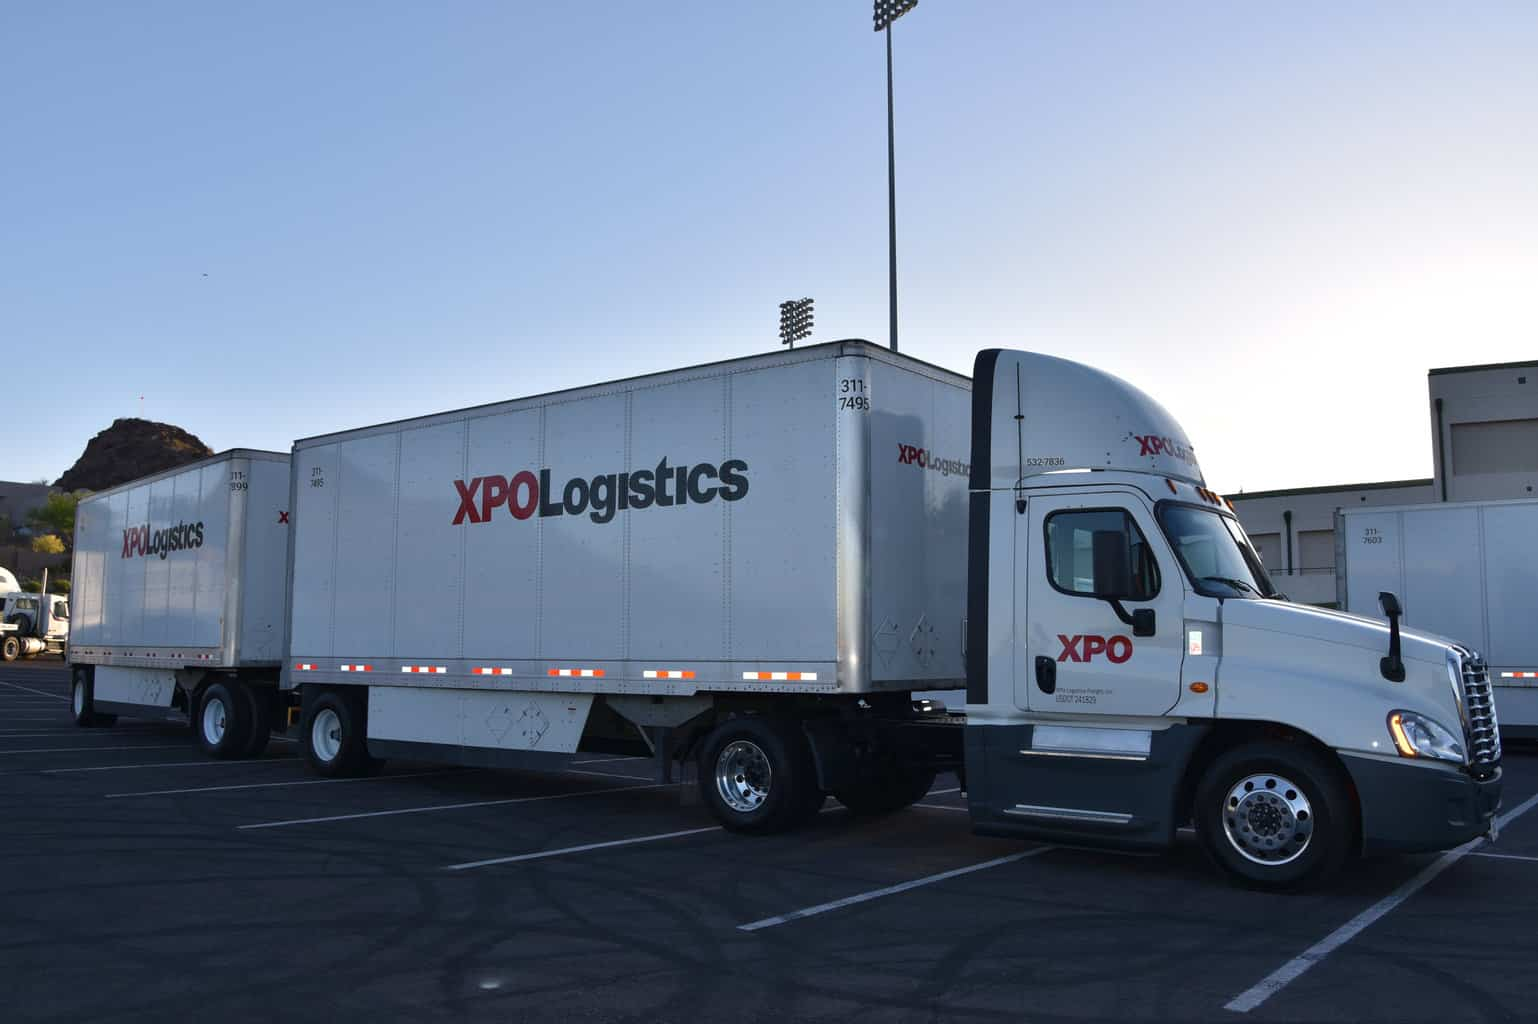 Senators demand answers from XPO on workplace conditions